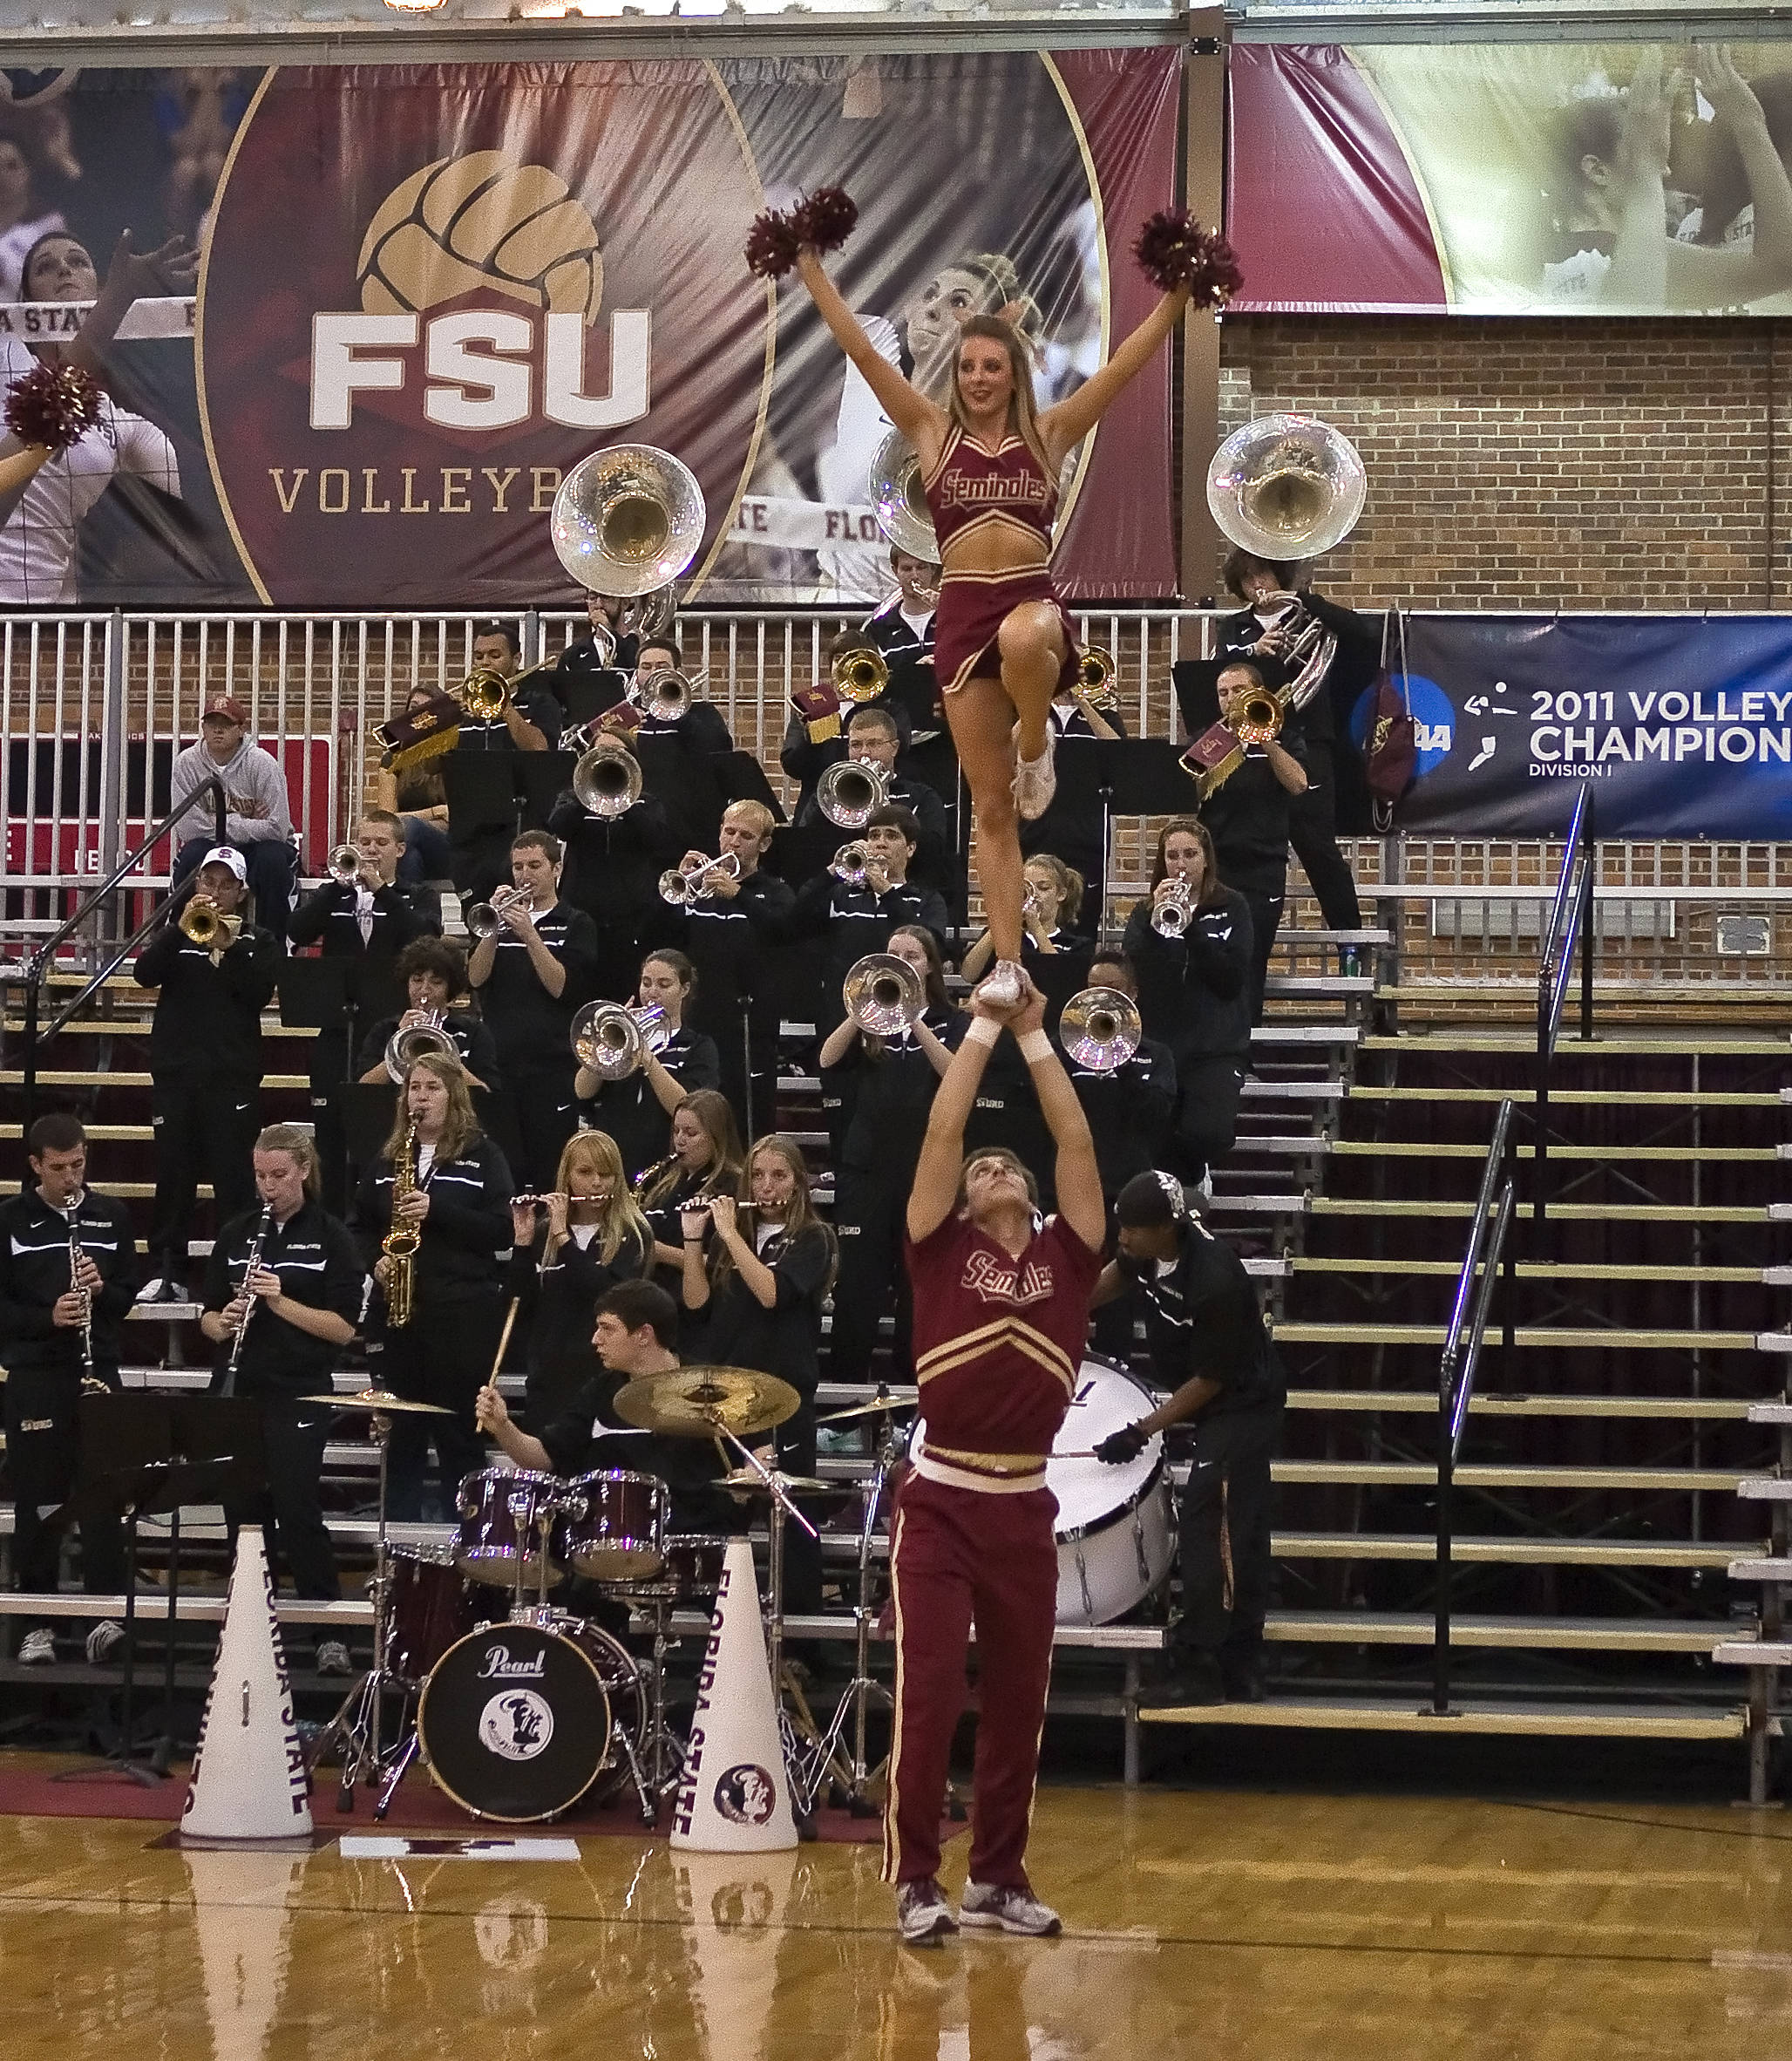 Cheerleaders and Seminole Sound, FSU vs Cincinnati, 12/03/2011